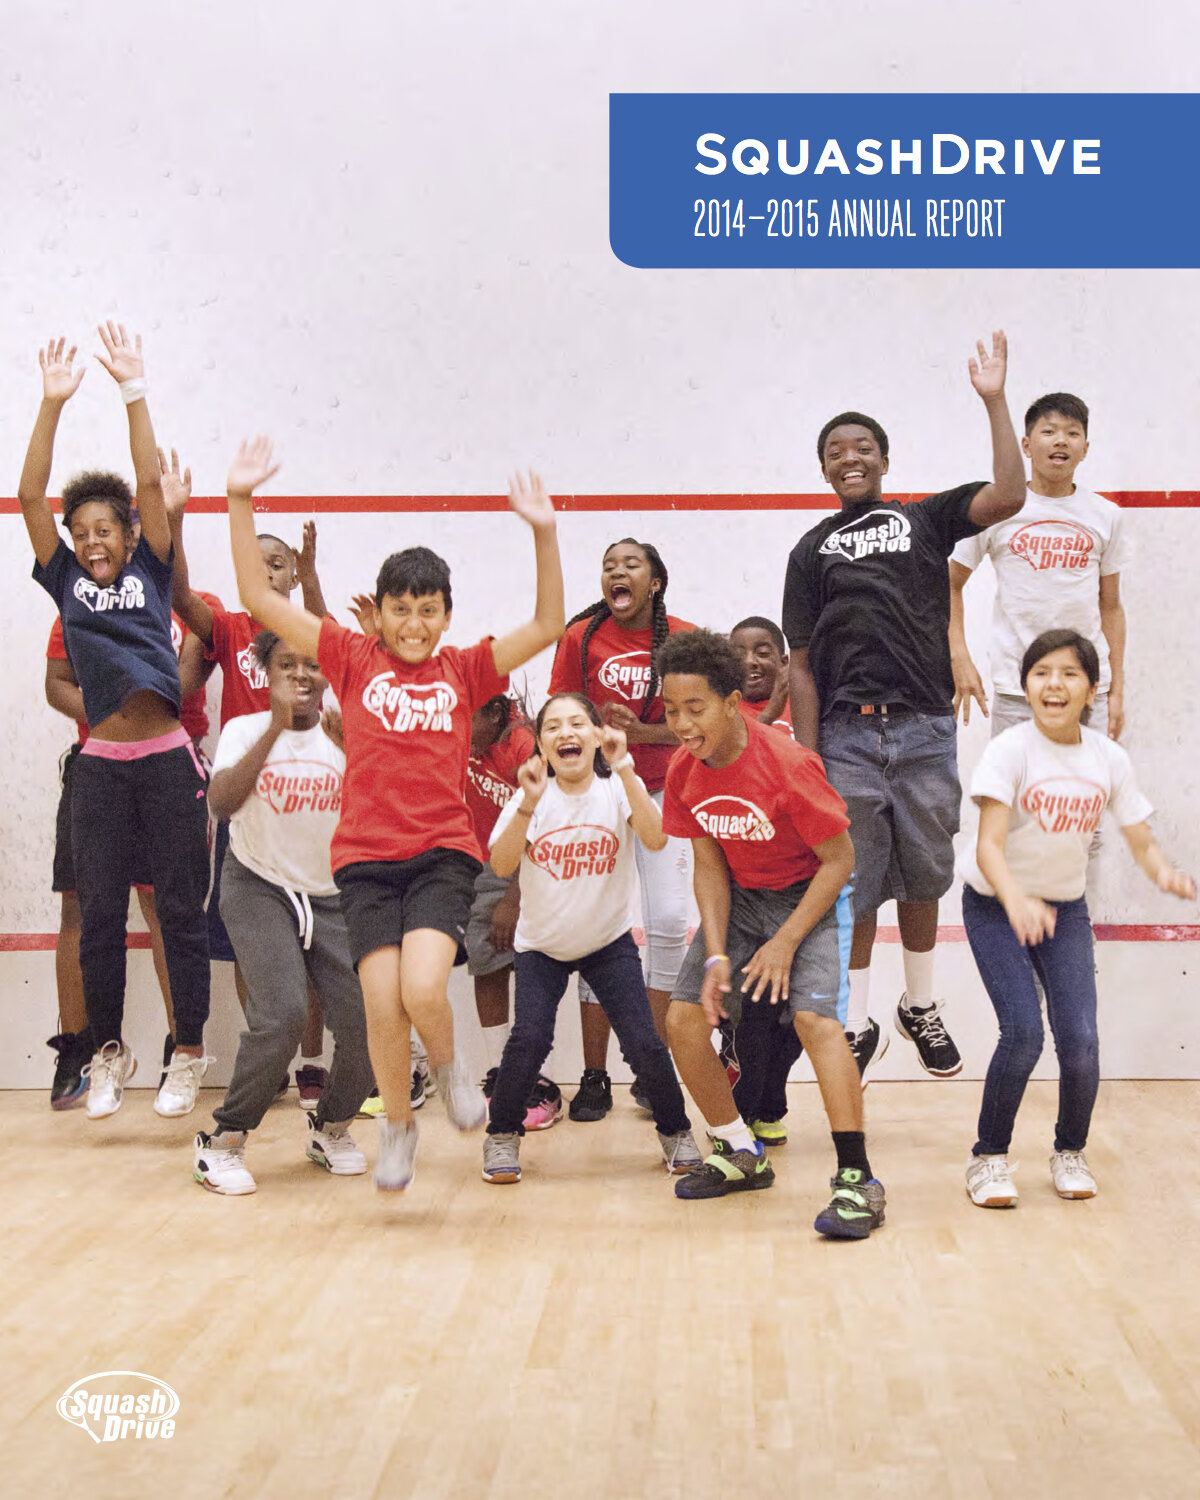 SquashDrive_AnnualReport_2014-2015-12-1.jpg